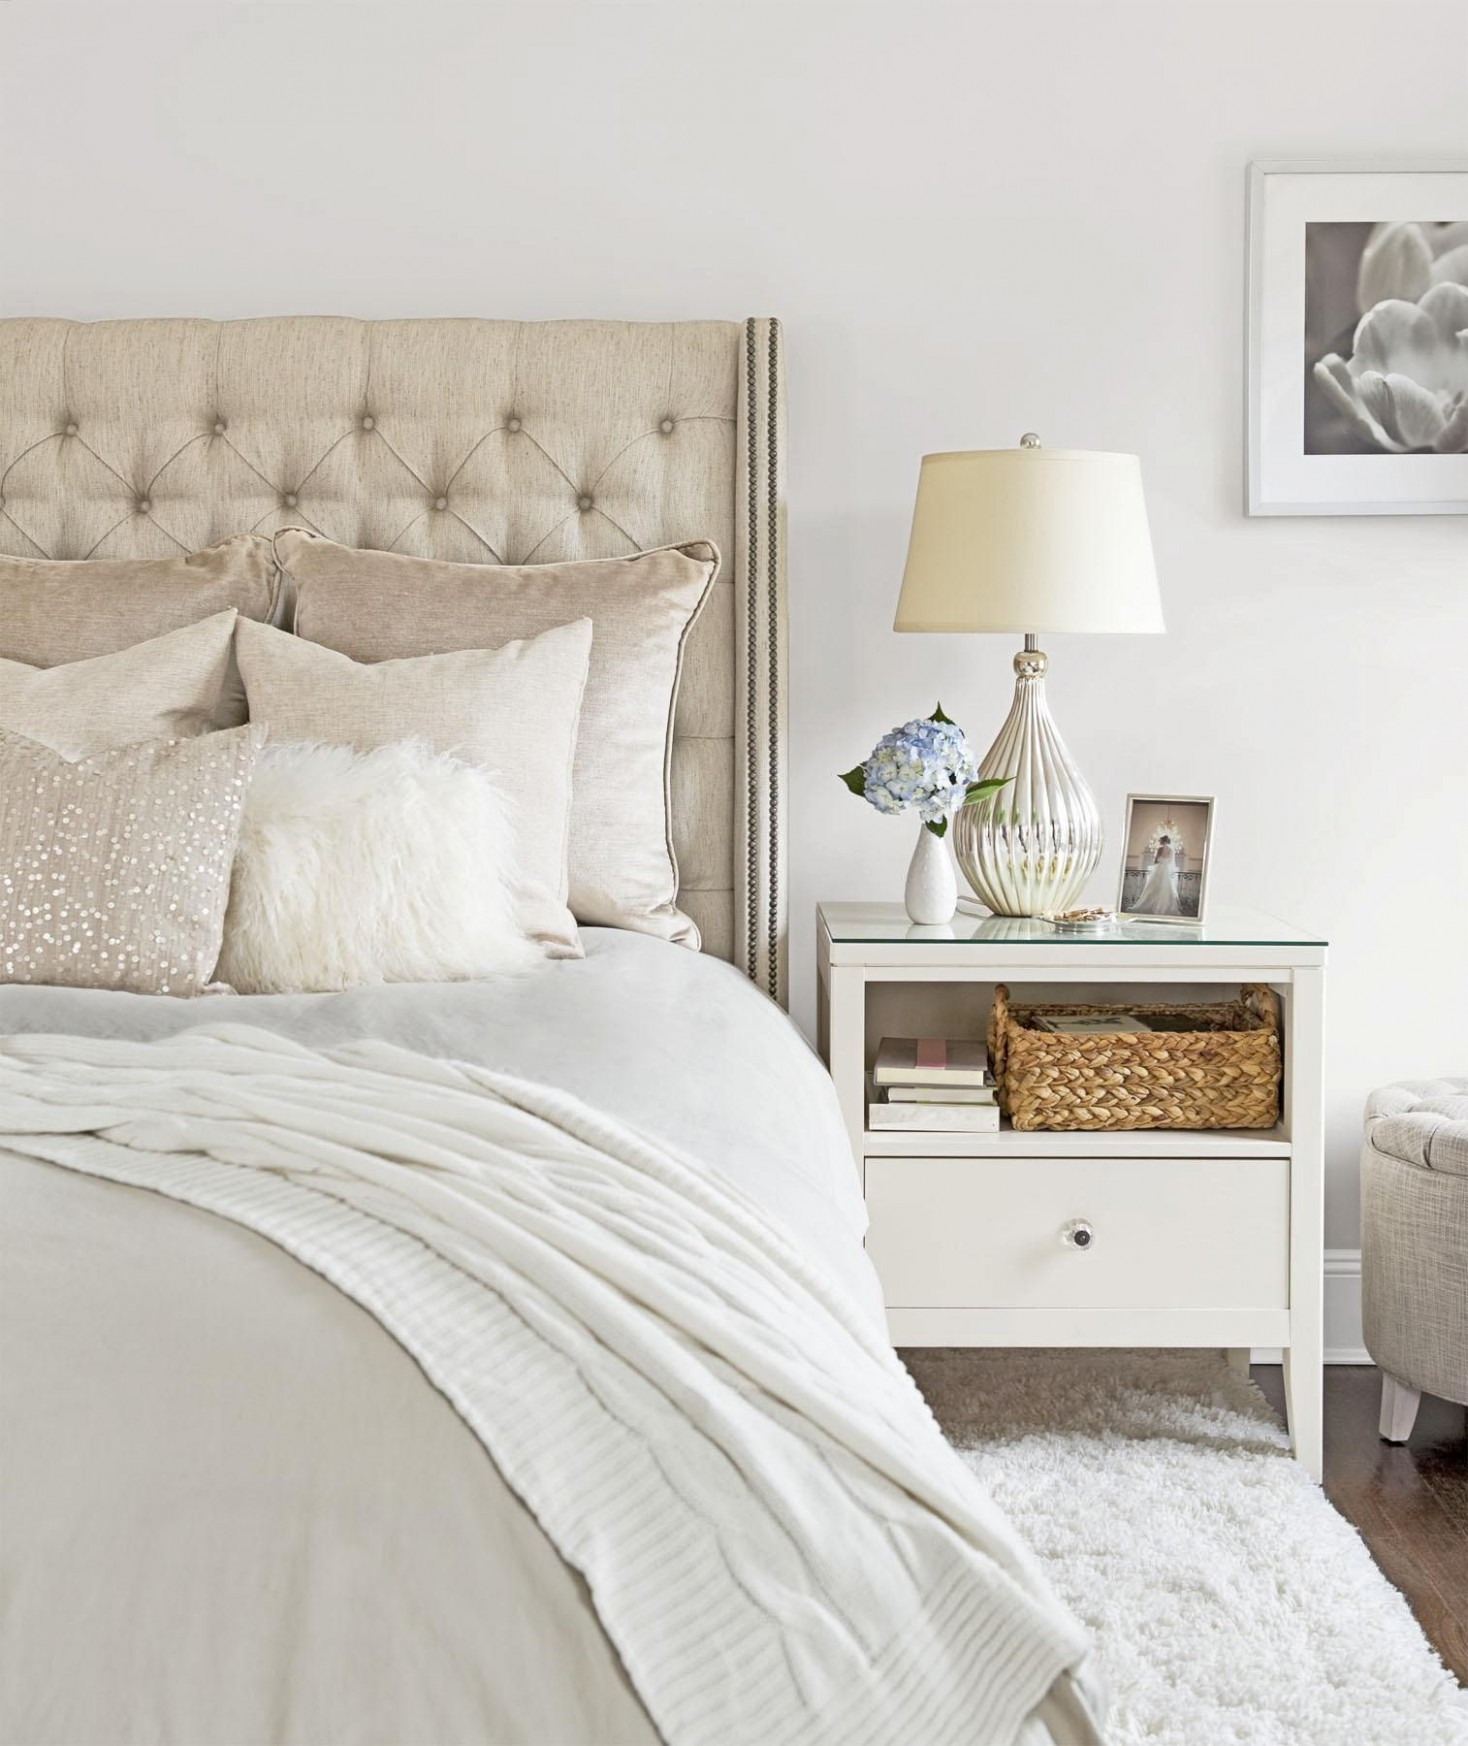 12 Bedroom Decorating Ideas - How to Design a Master Bedroom - Master Bedroom Quilt Ideas